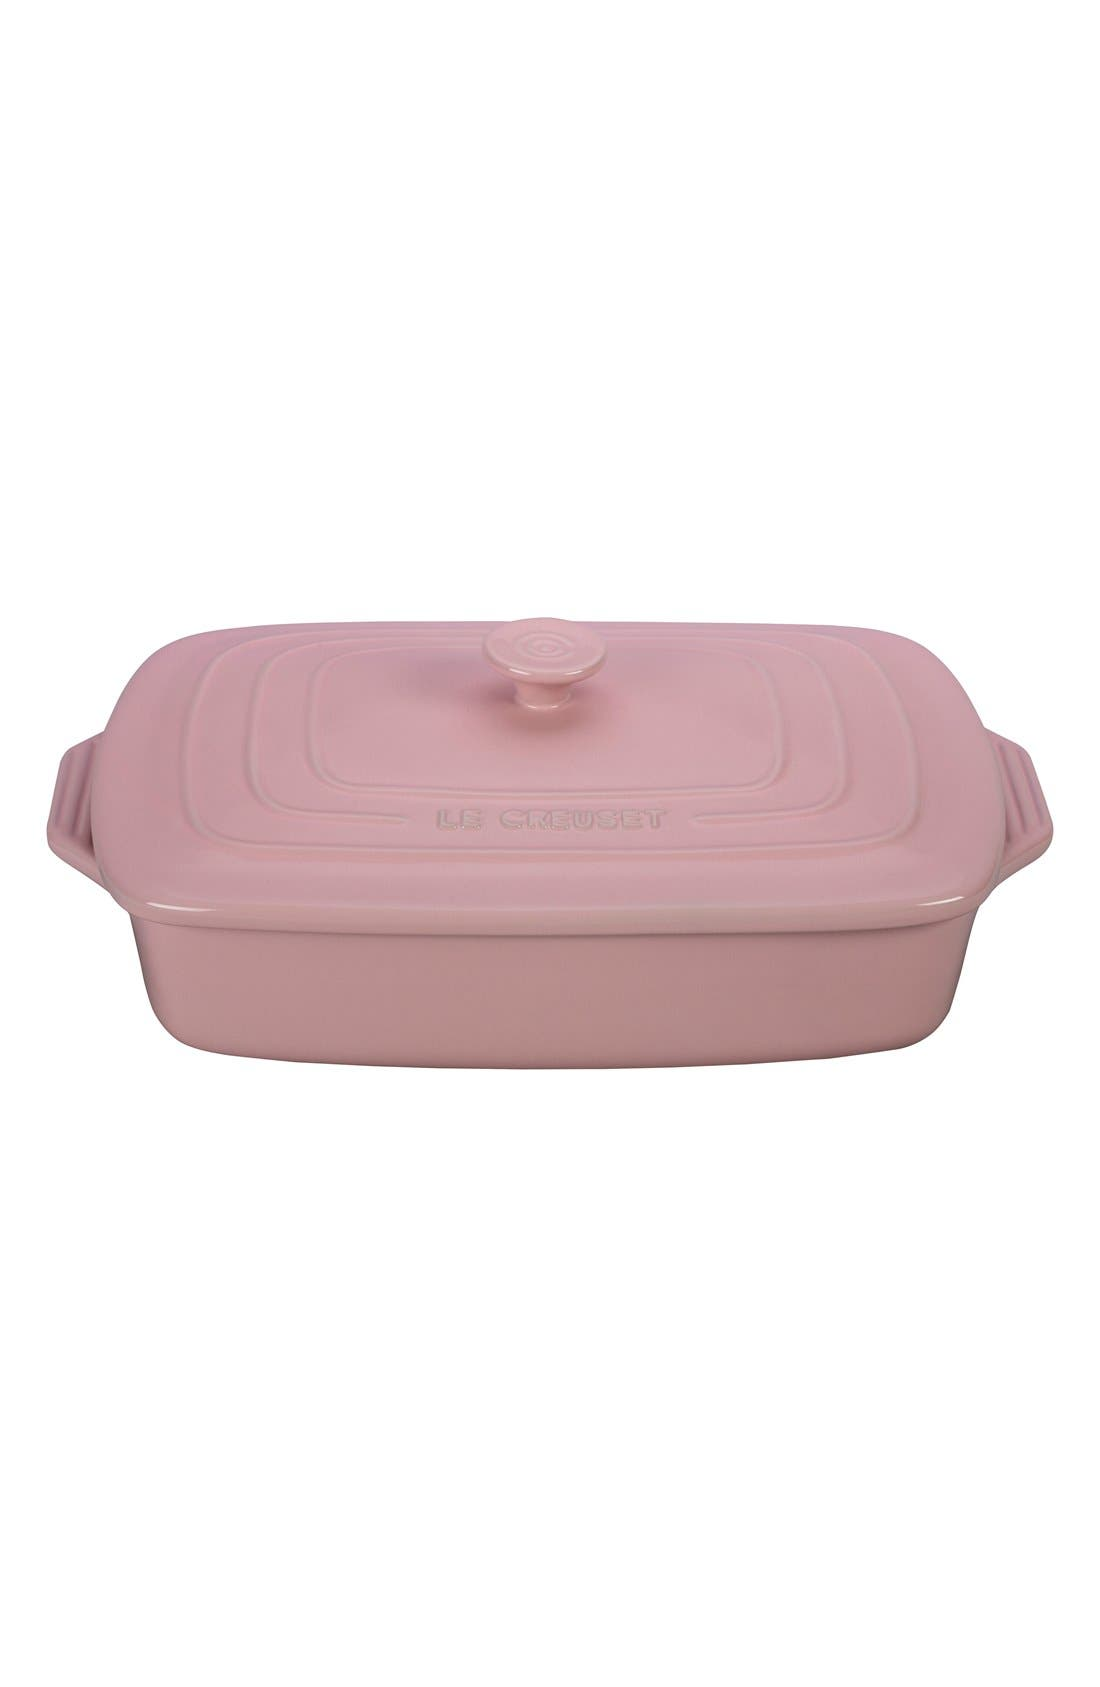 Le Creuset 3 1/2 Quart Covered Rectangular Stoneware Casserole